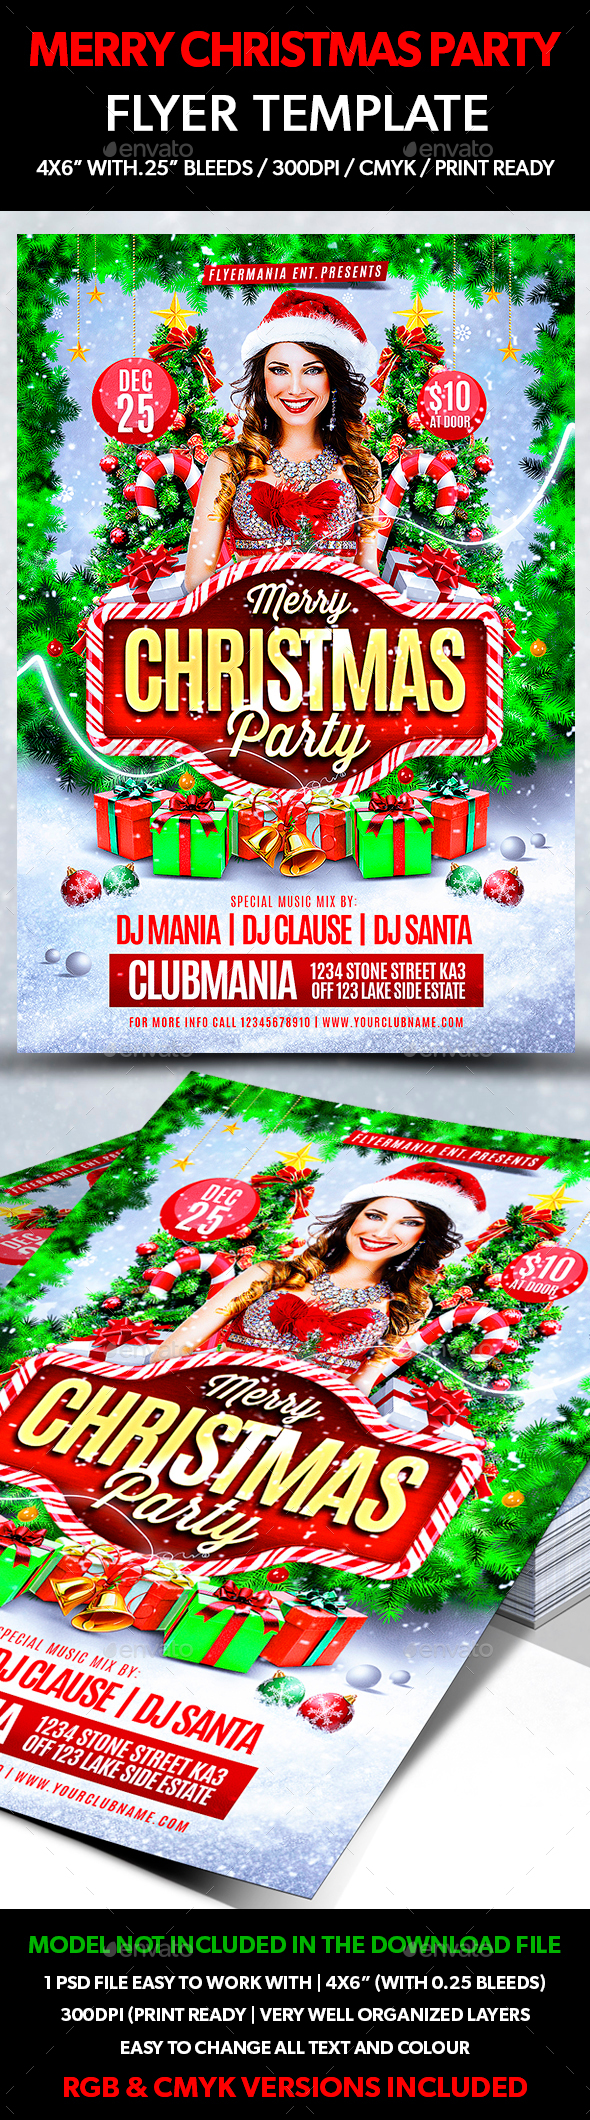 Merry Christmas Party Flyer Template - Flyers Print Templates